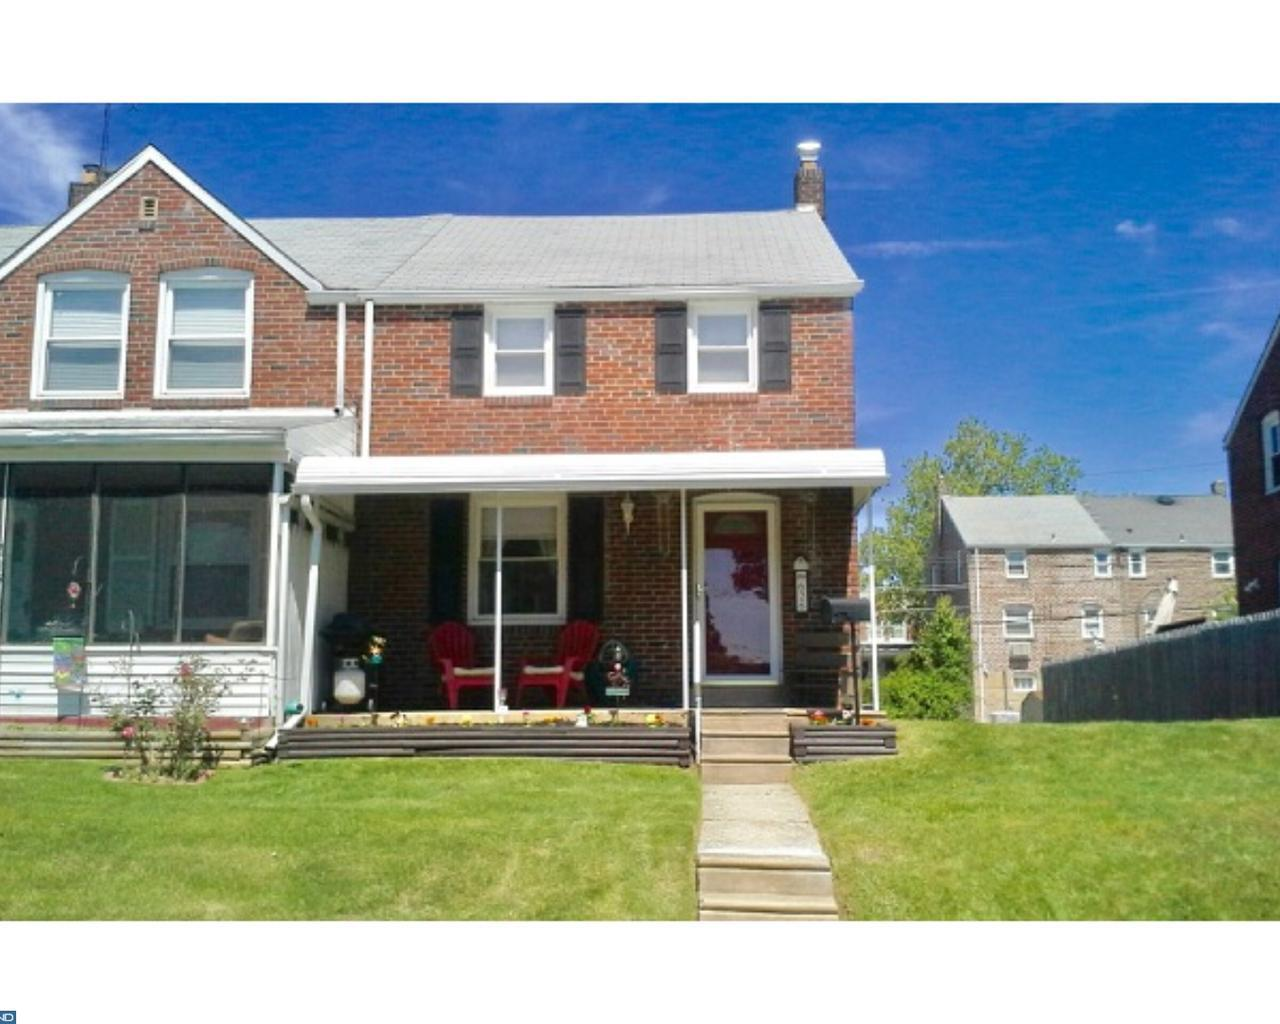 626 darby rd ridley park pa mls 6981650 century 21